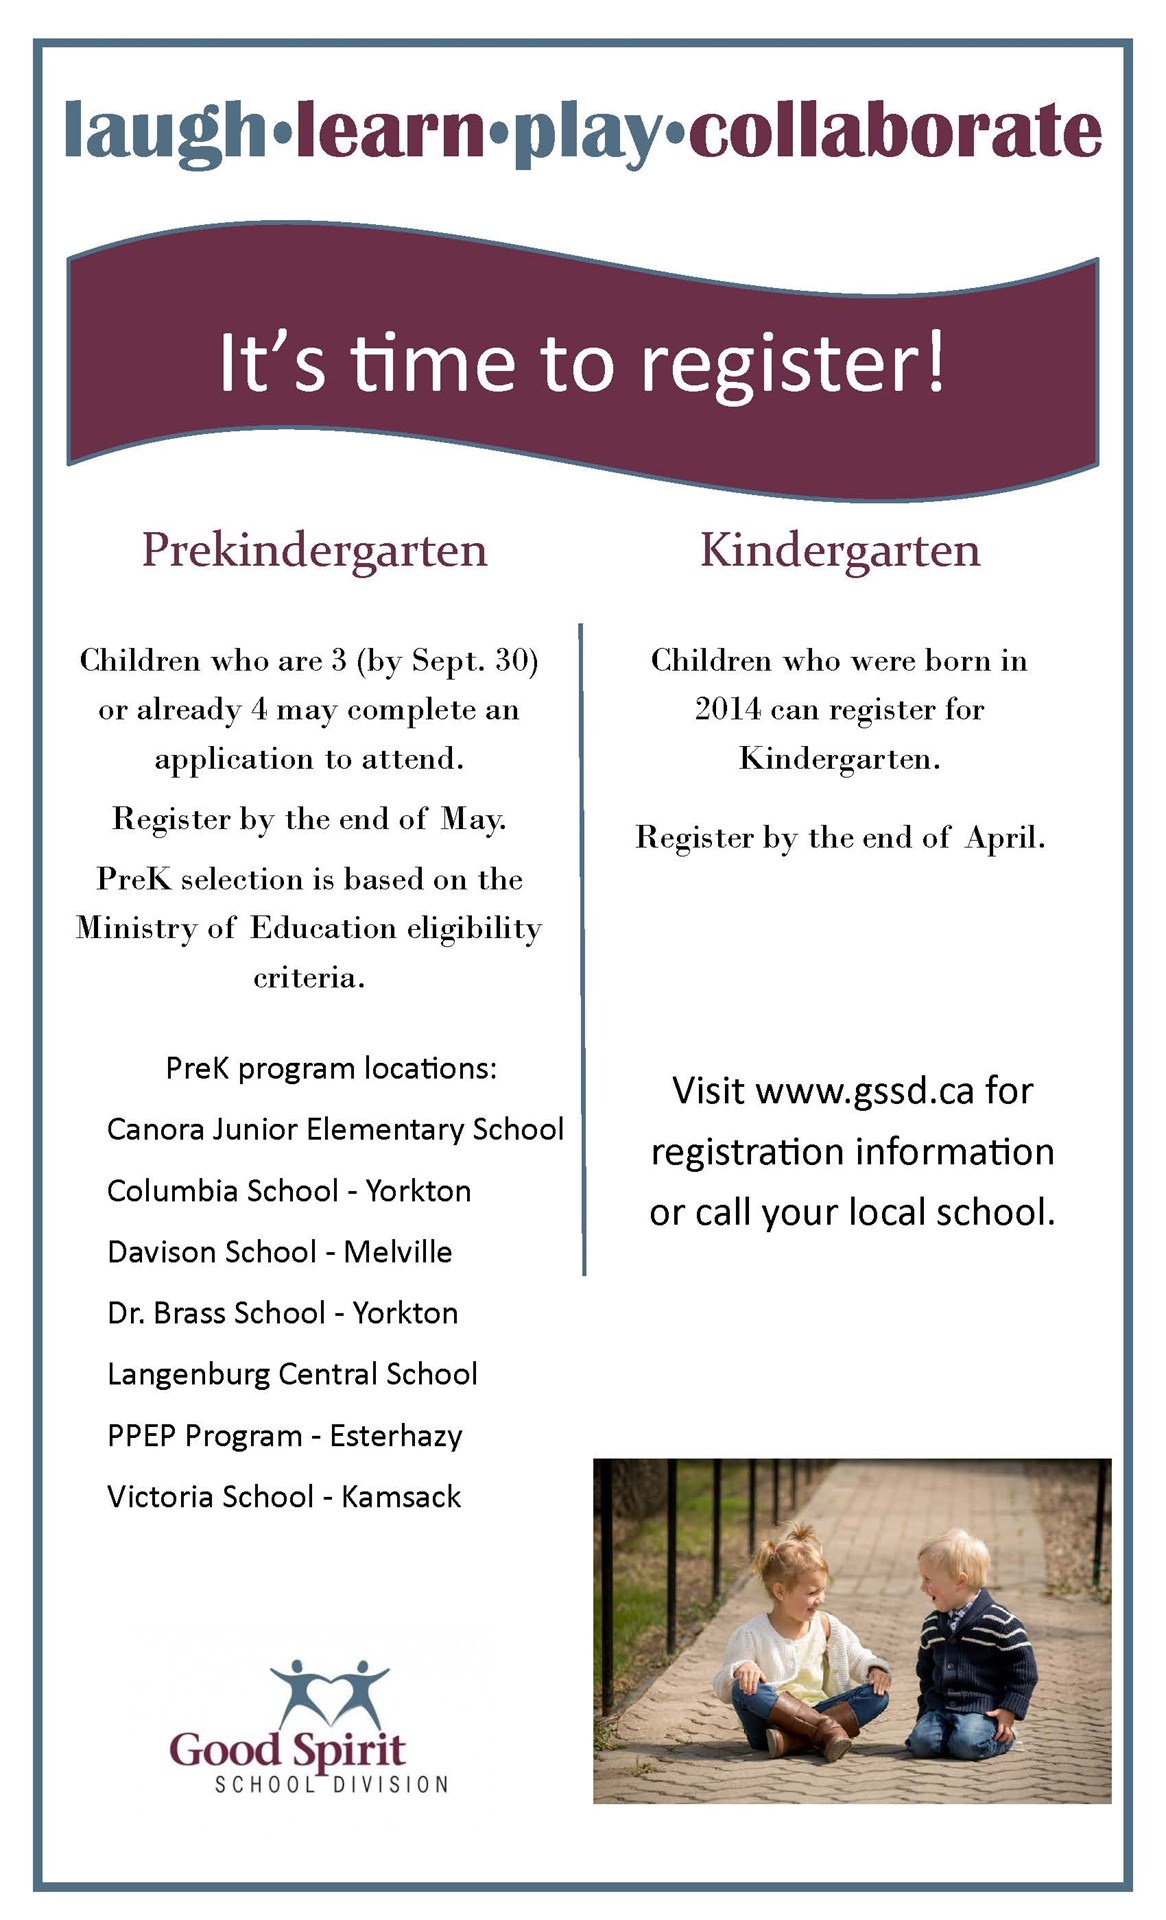 Pre Kindergarten and Kindergarten Registration